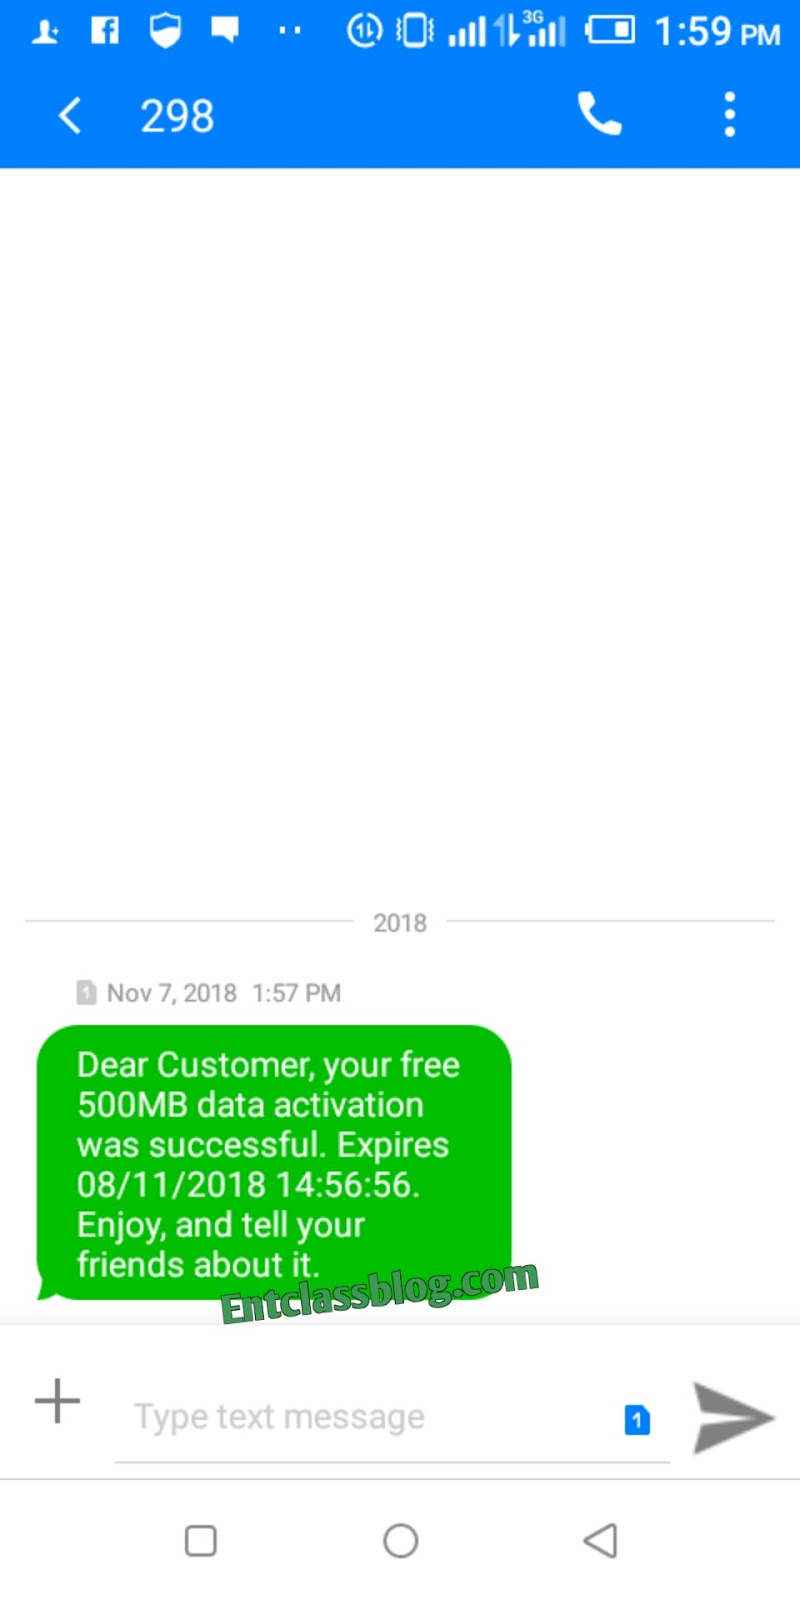 UPDATED: Download MyMTN App And Get Free 500MB Data | Entclass Blog